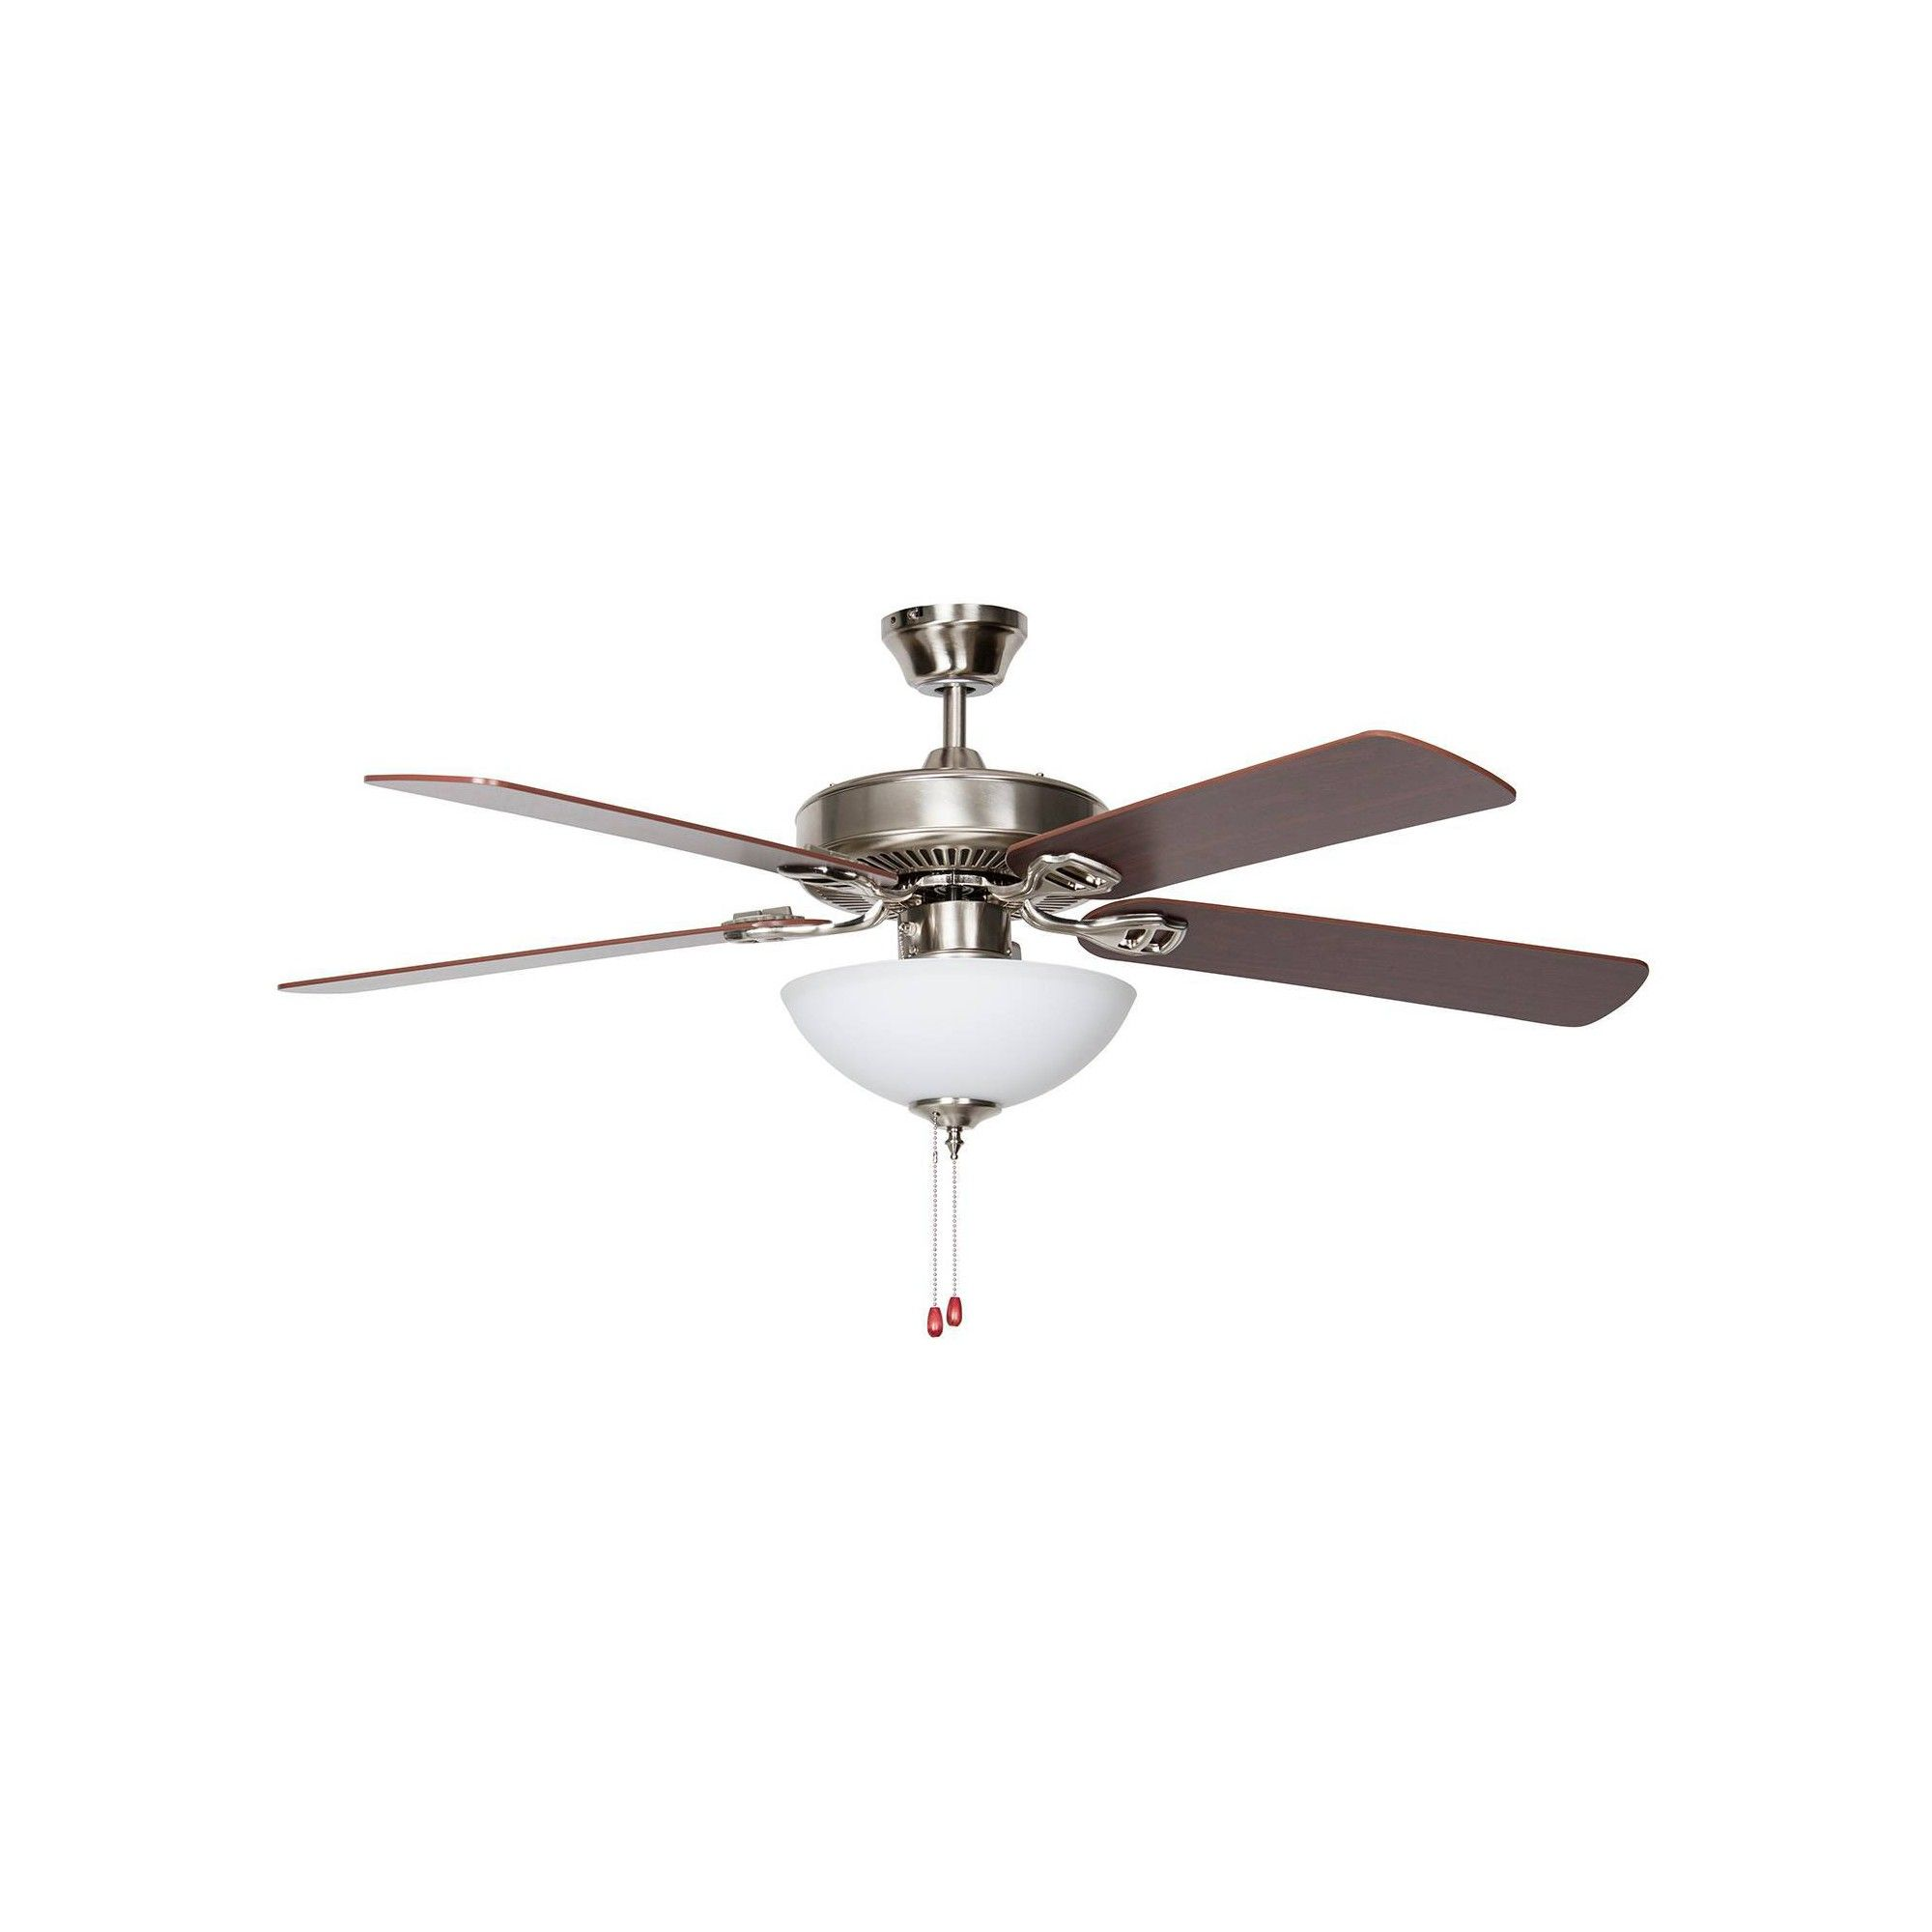 50 Heritage Square Easy Hang Ceiling Fan Stainless Steel